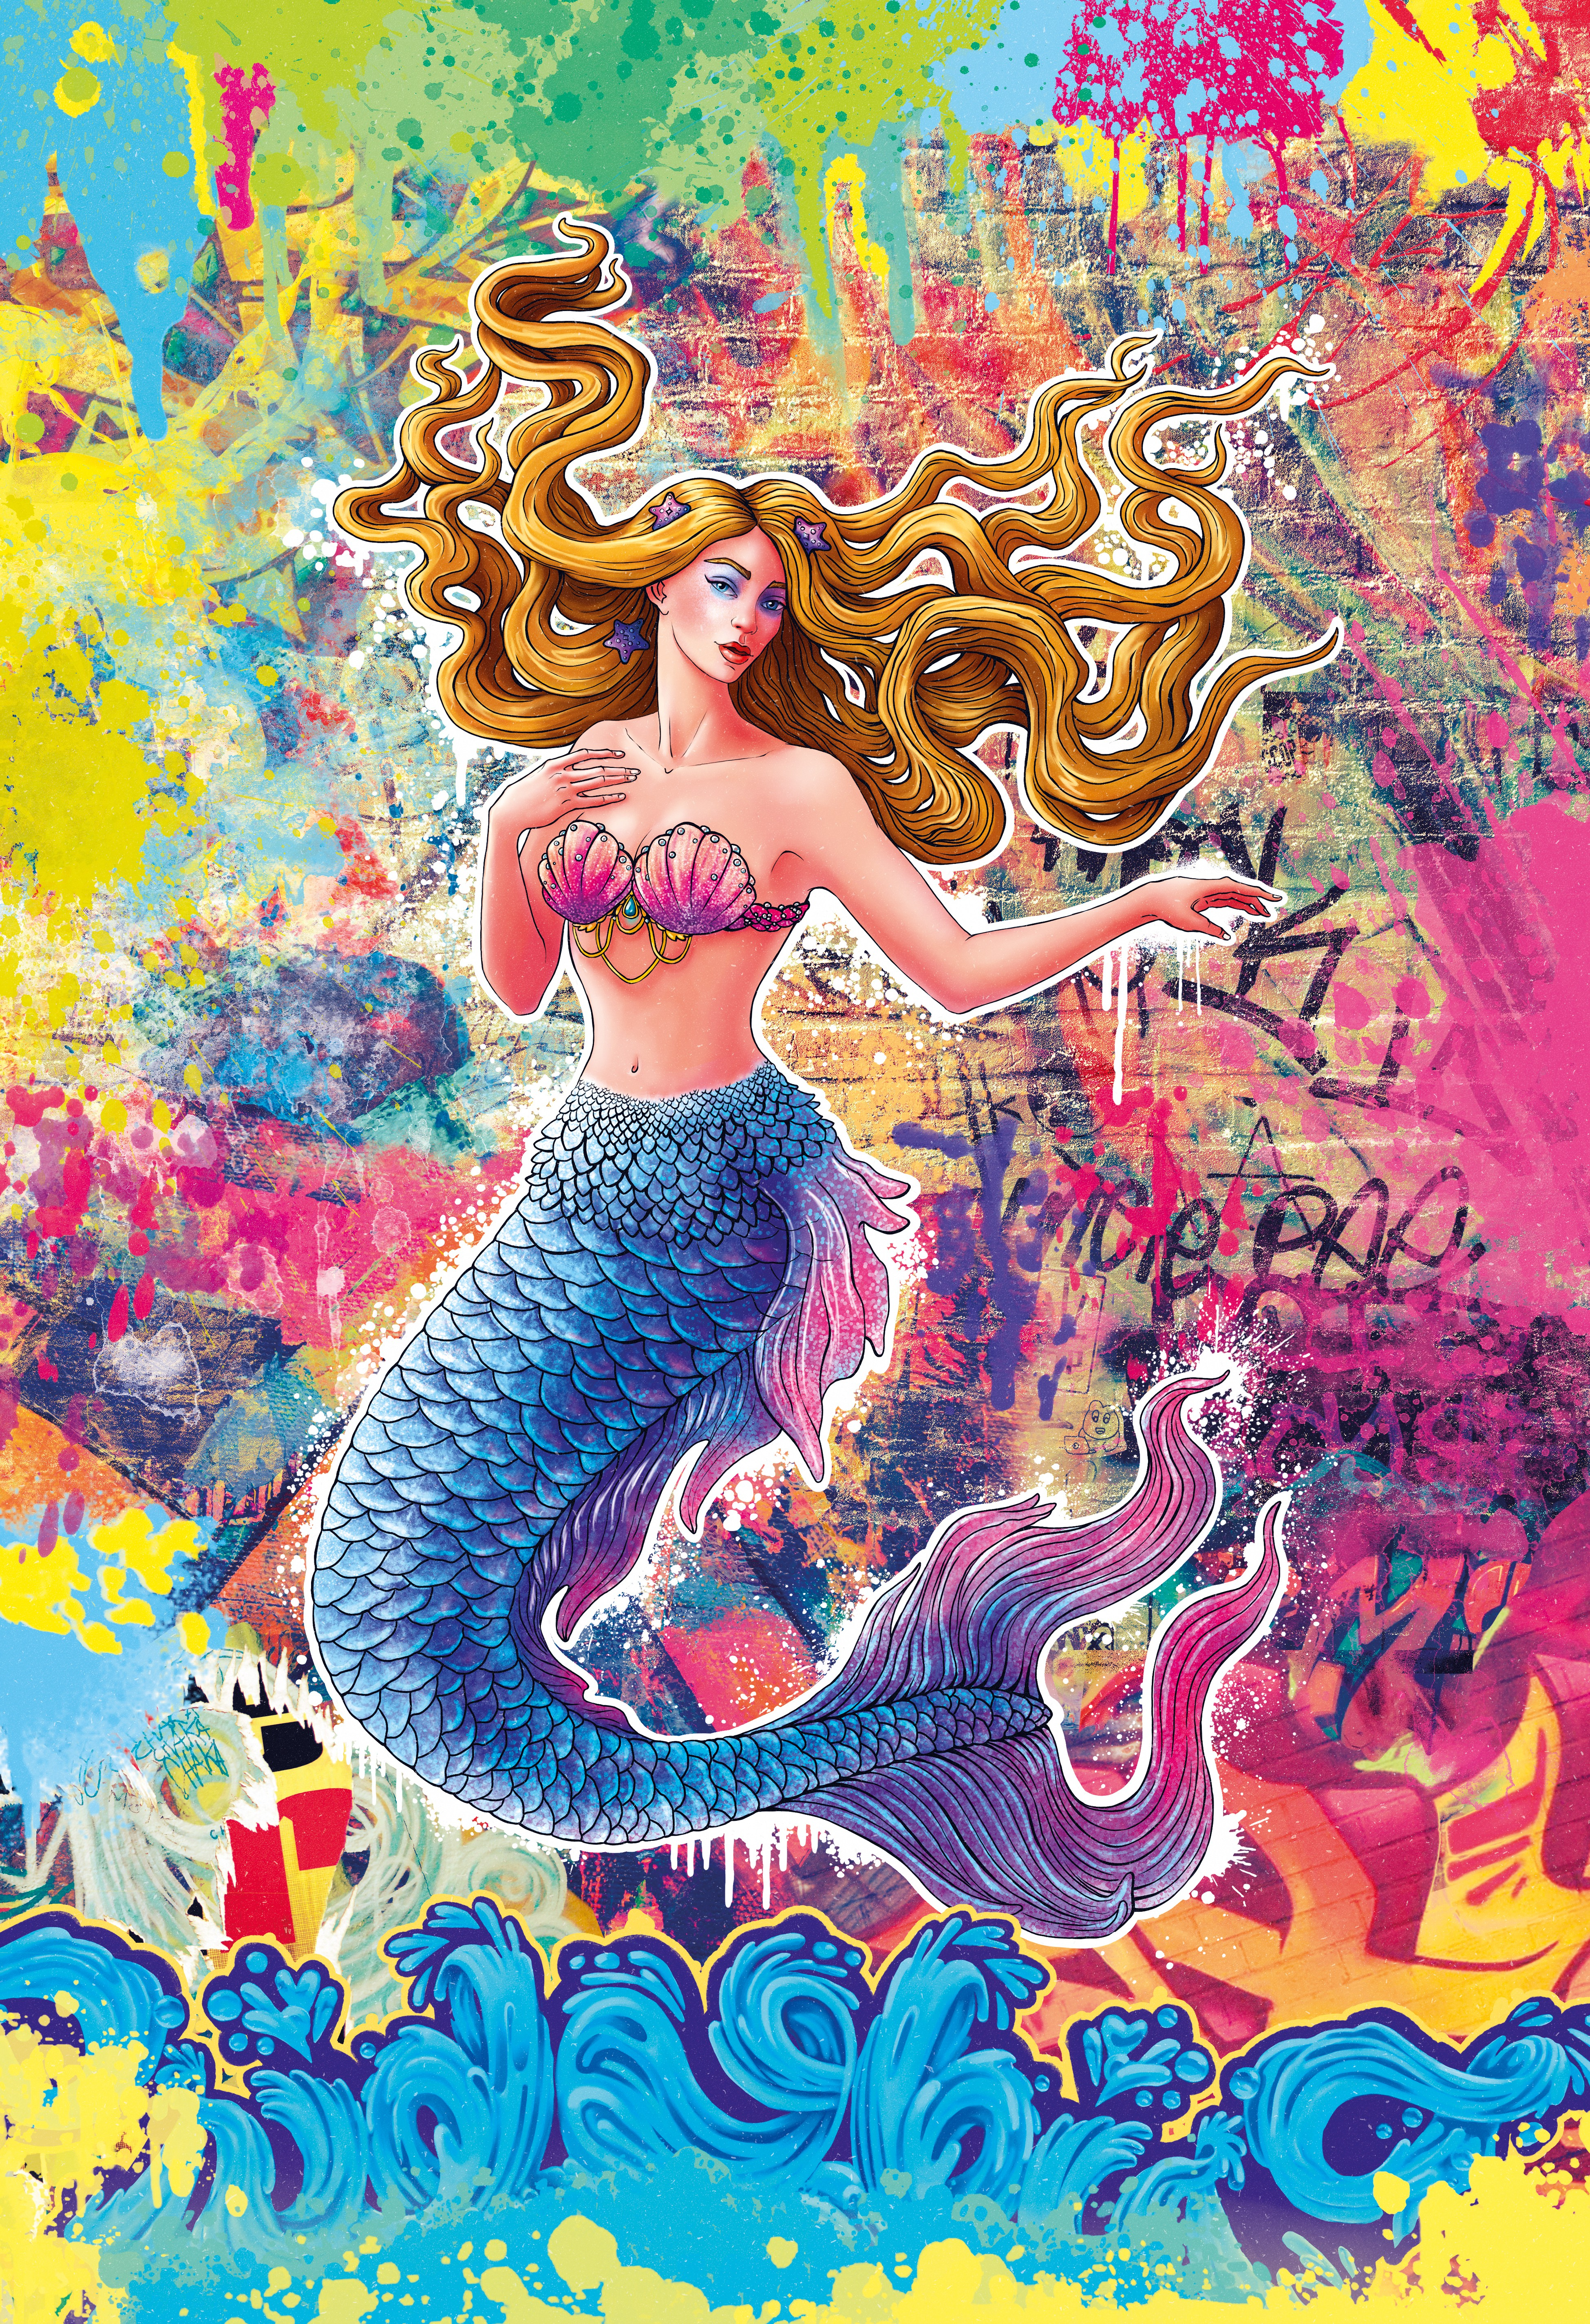 Beachy, Playful and Colorful Mermaid Illustration in a Street-Art, Graffiti or Comic Book Style